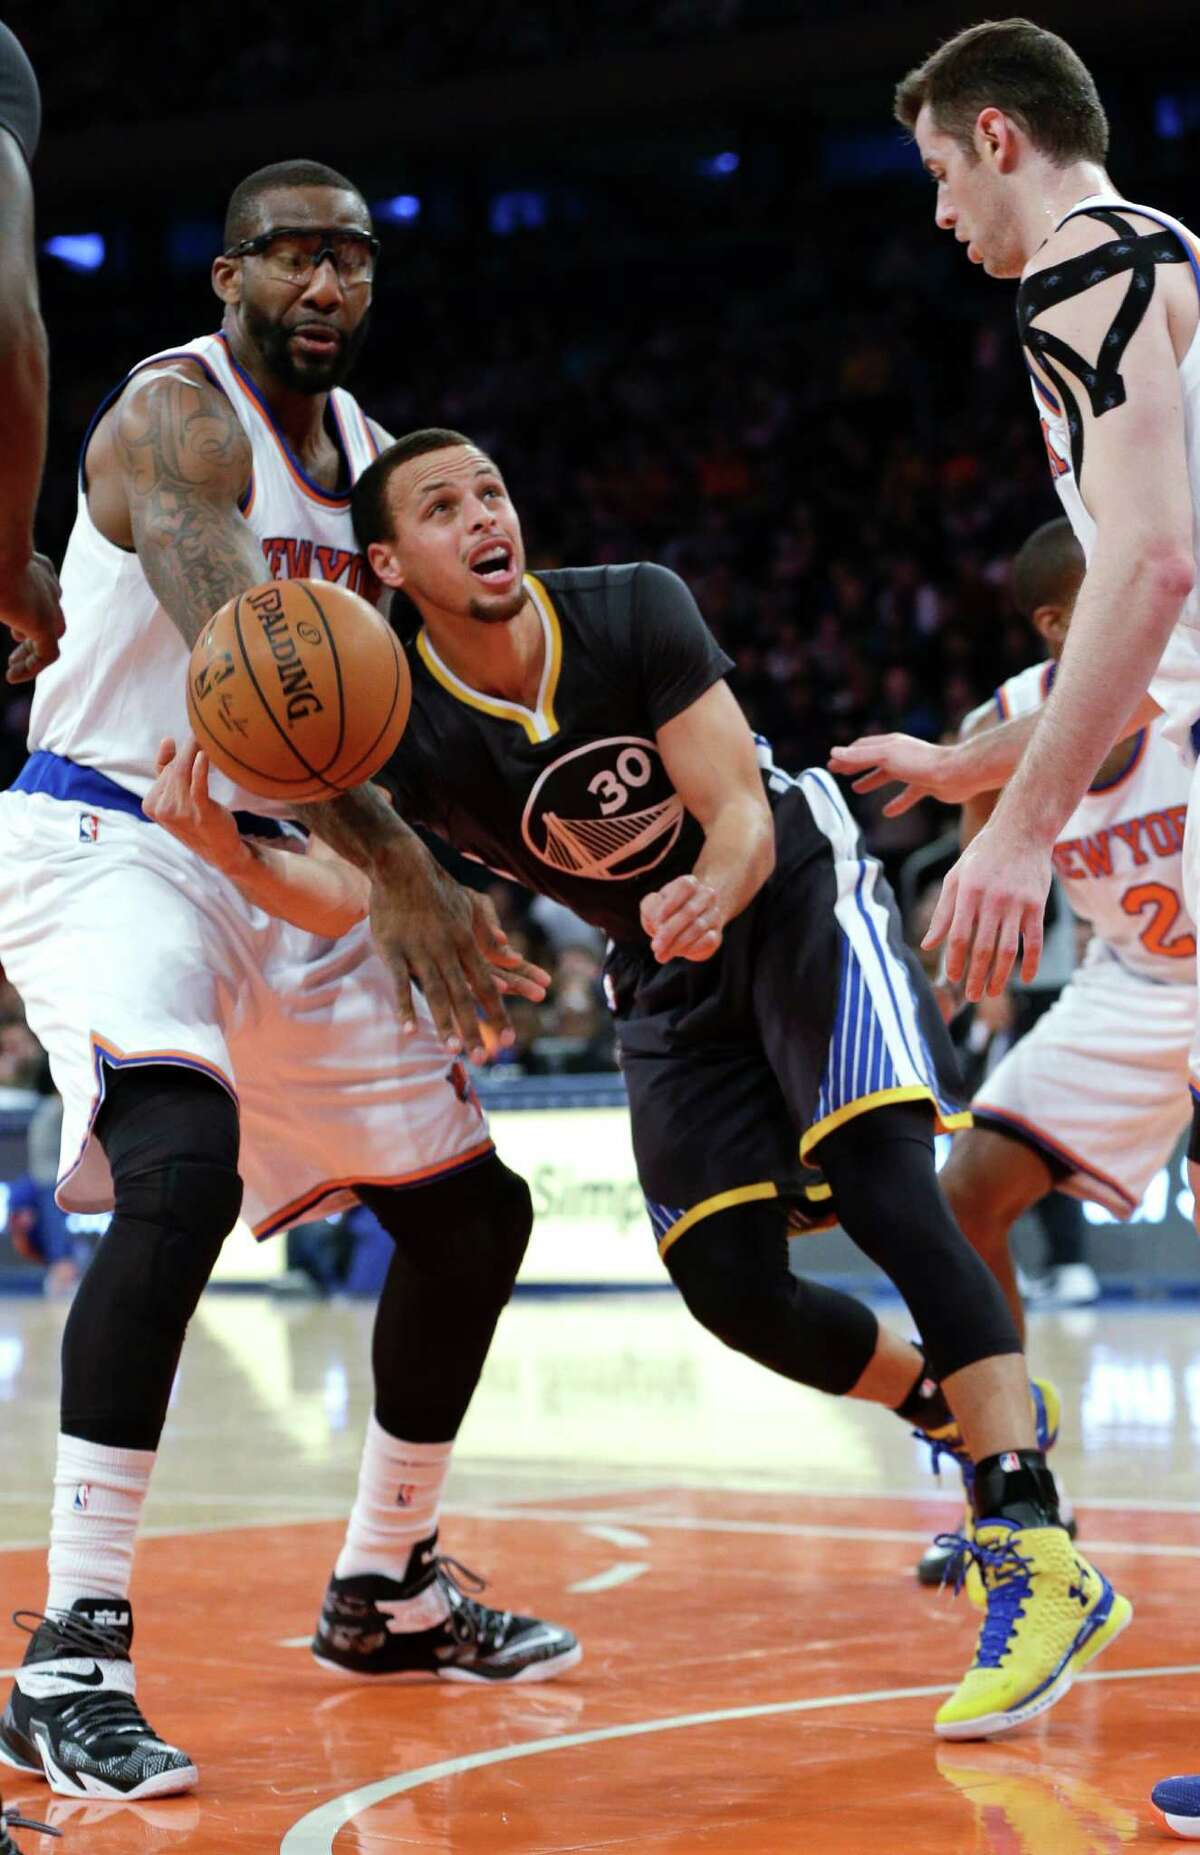 Golden State Warriors' Stephen Curry, center, is fouled by New York Knicks' Amare Stoudemire, left, during the first half of an NBA basketball game Saturday, Feb. 7, 2015, in New York. (AP Photo/Frank Franklin II) ORG XMIT: MSG108